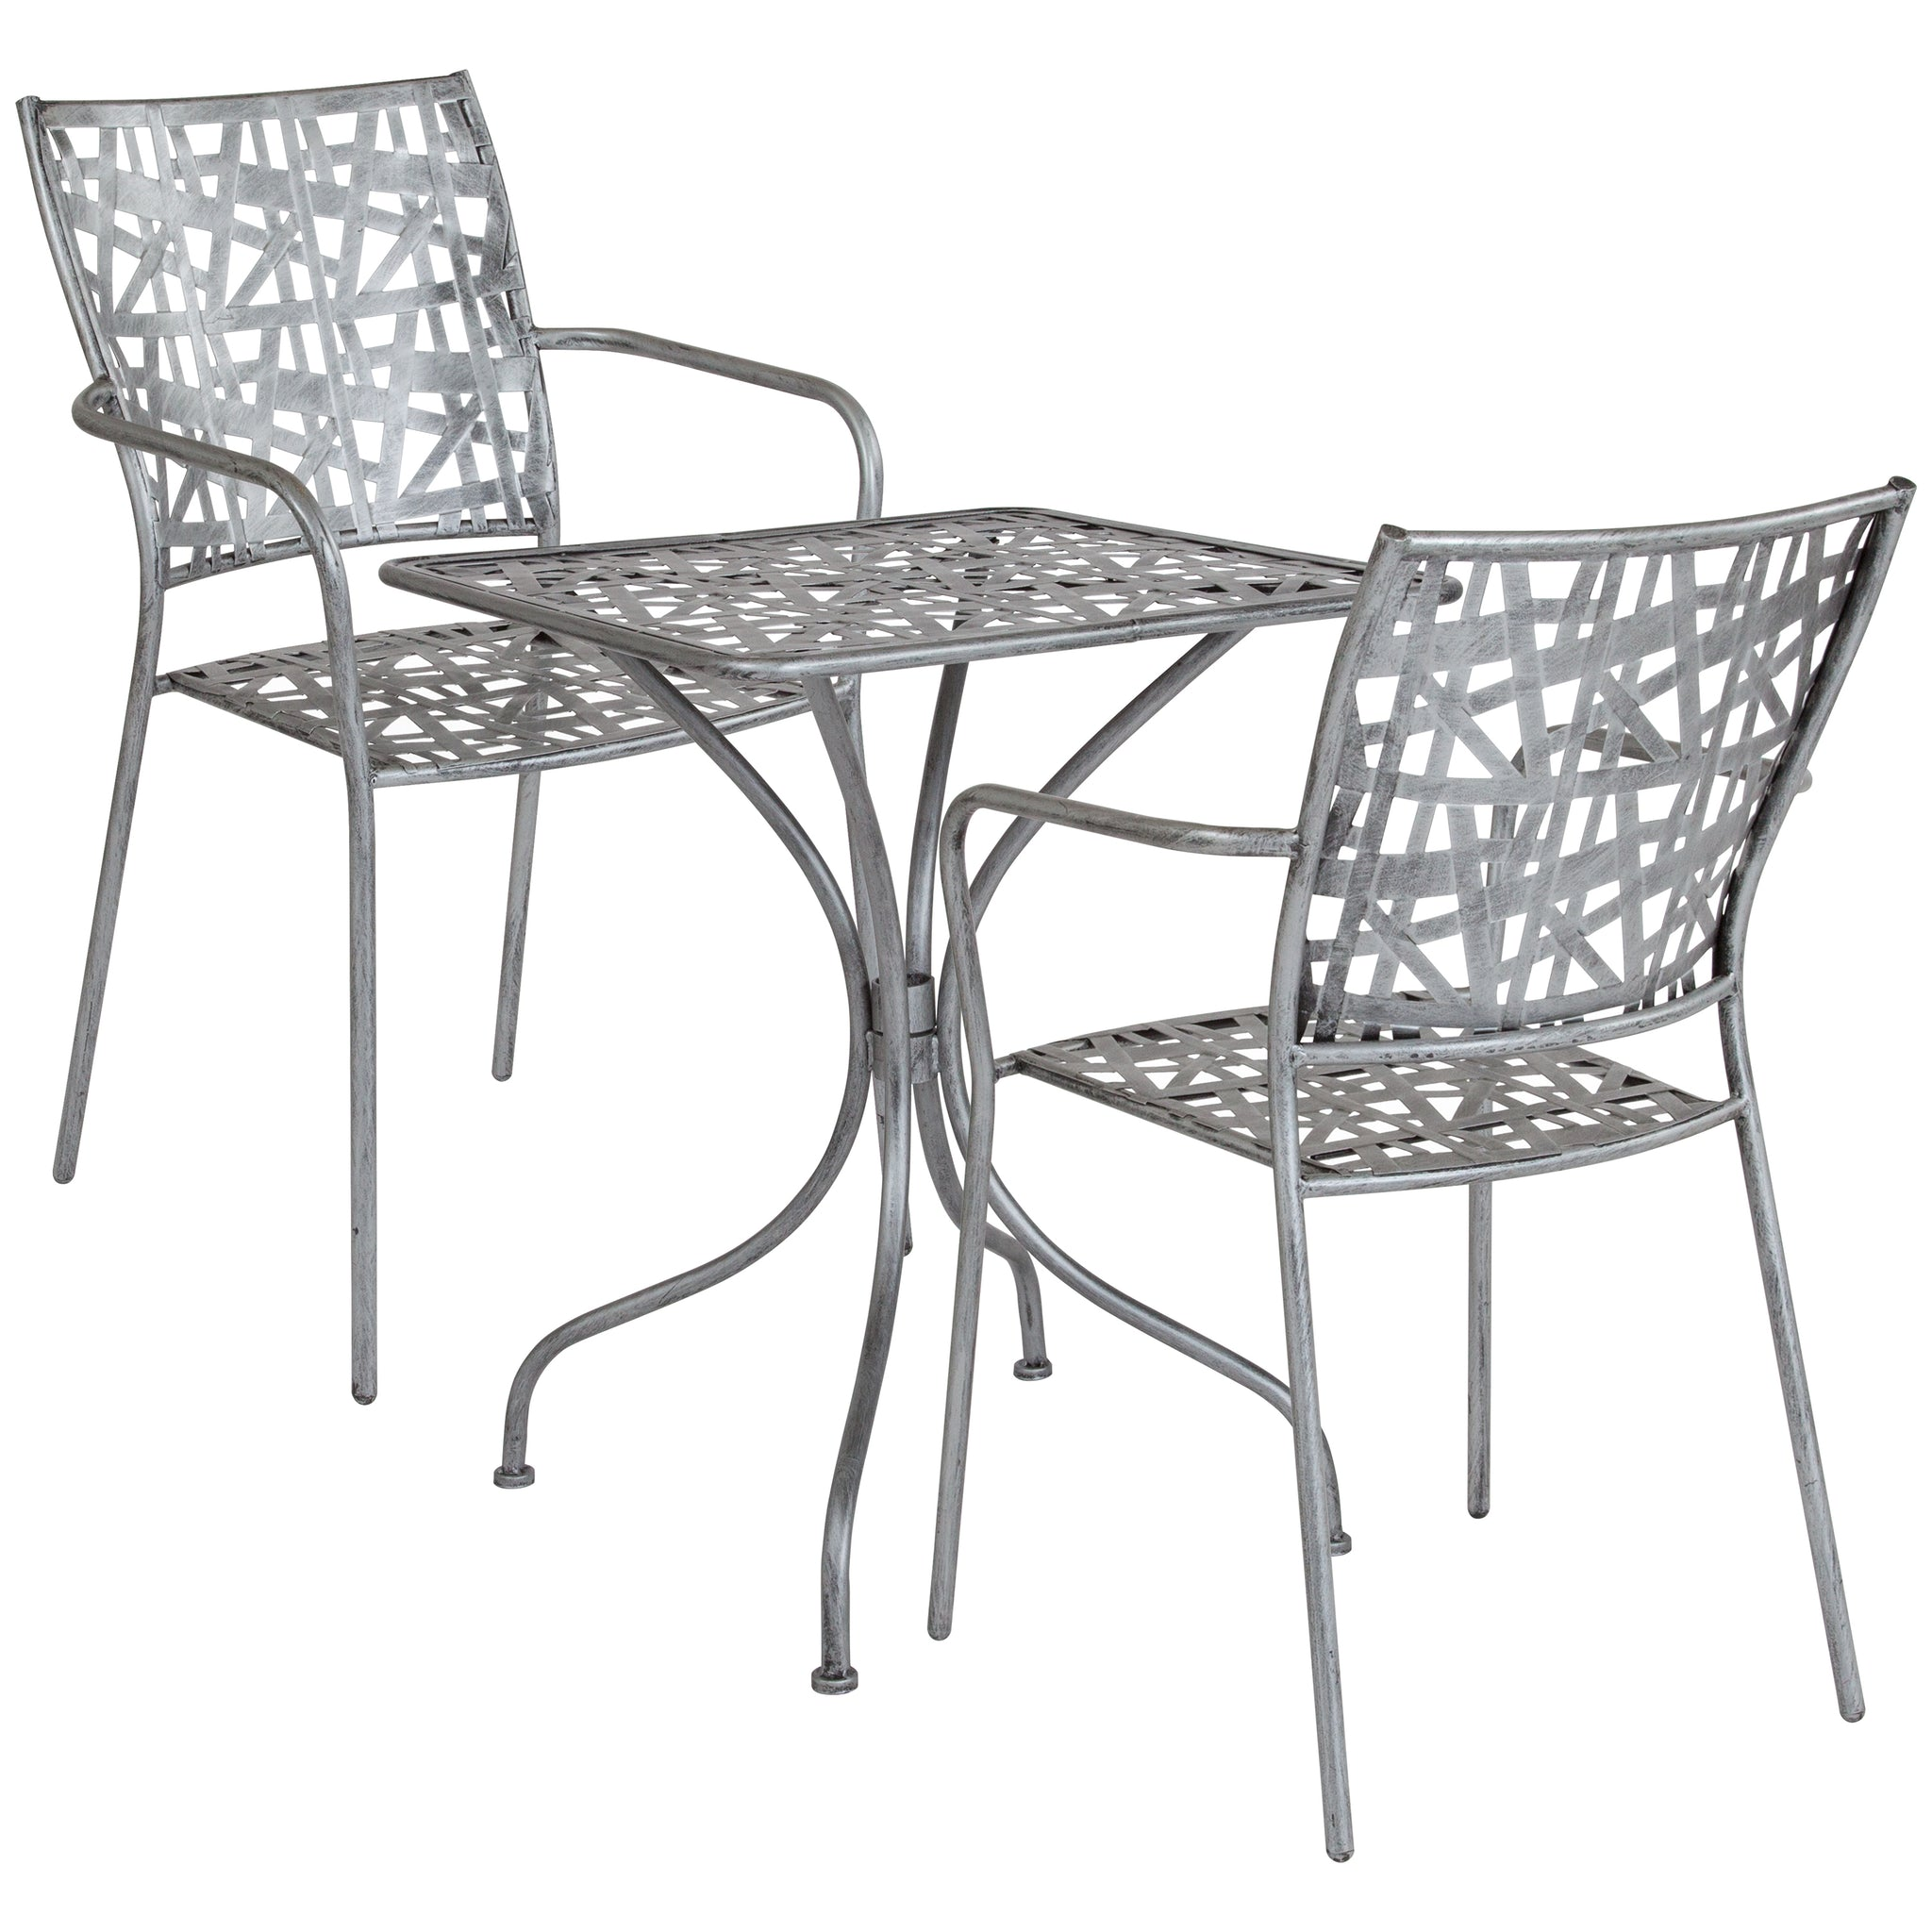 "Agostina Series 23.5"""" Square Indoor-Outdoor Steel Patio Table with 2 Stack Chairs"